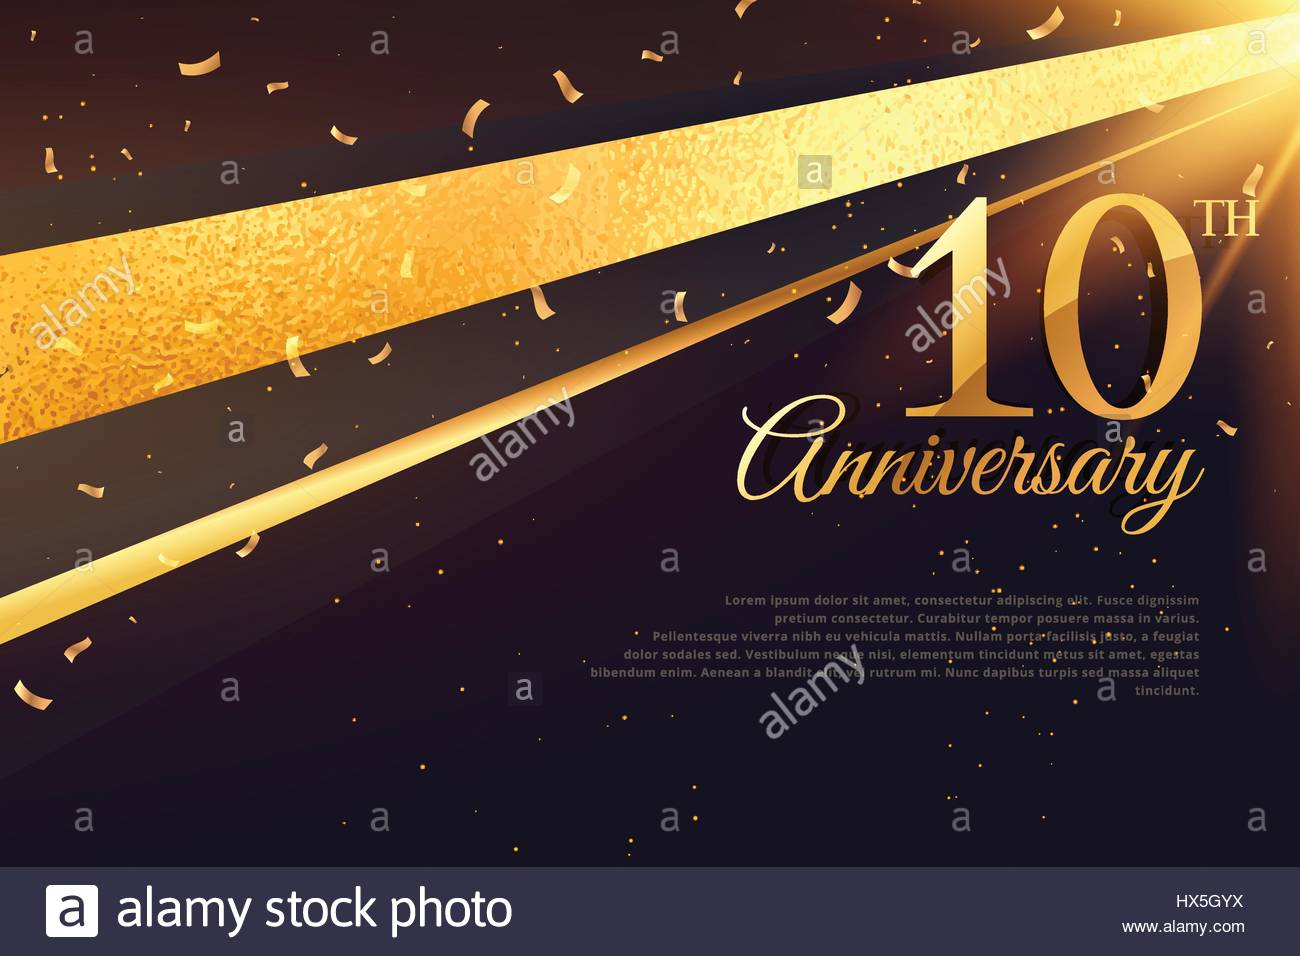 10th anniversary celebration card template - Stock Vector